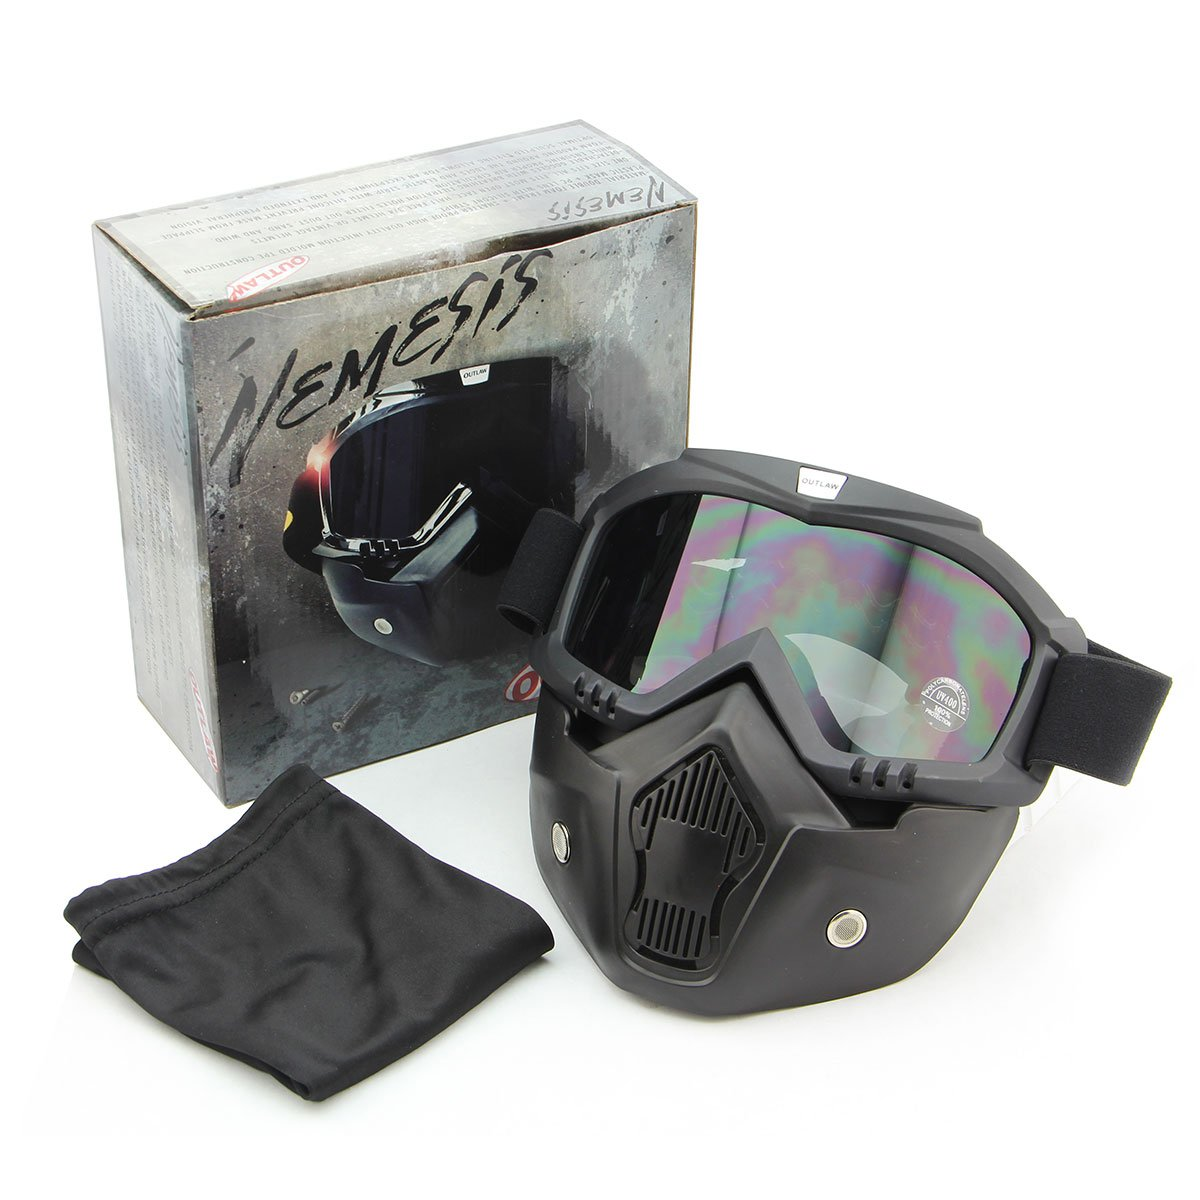 Outlaw 50 Nemesis Vintage Face Mask with Detachable Motorcycle Goggles and UV 4 - One Size